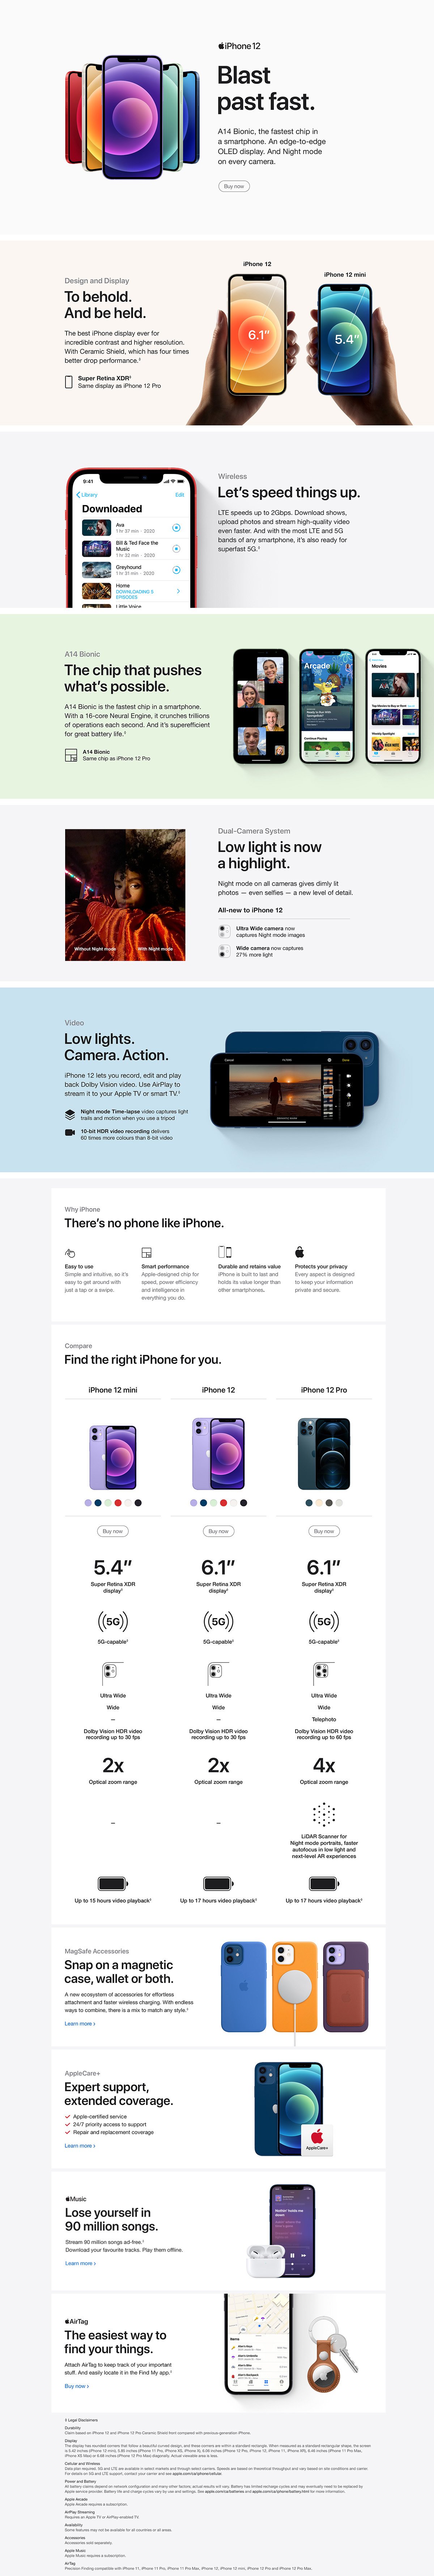 Compare iPhone Devices